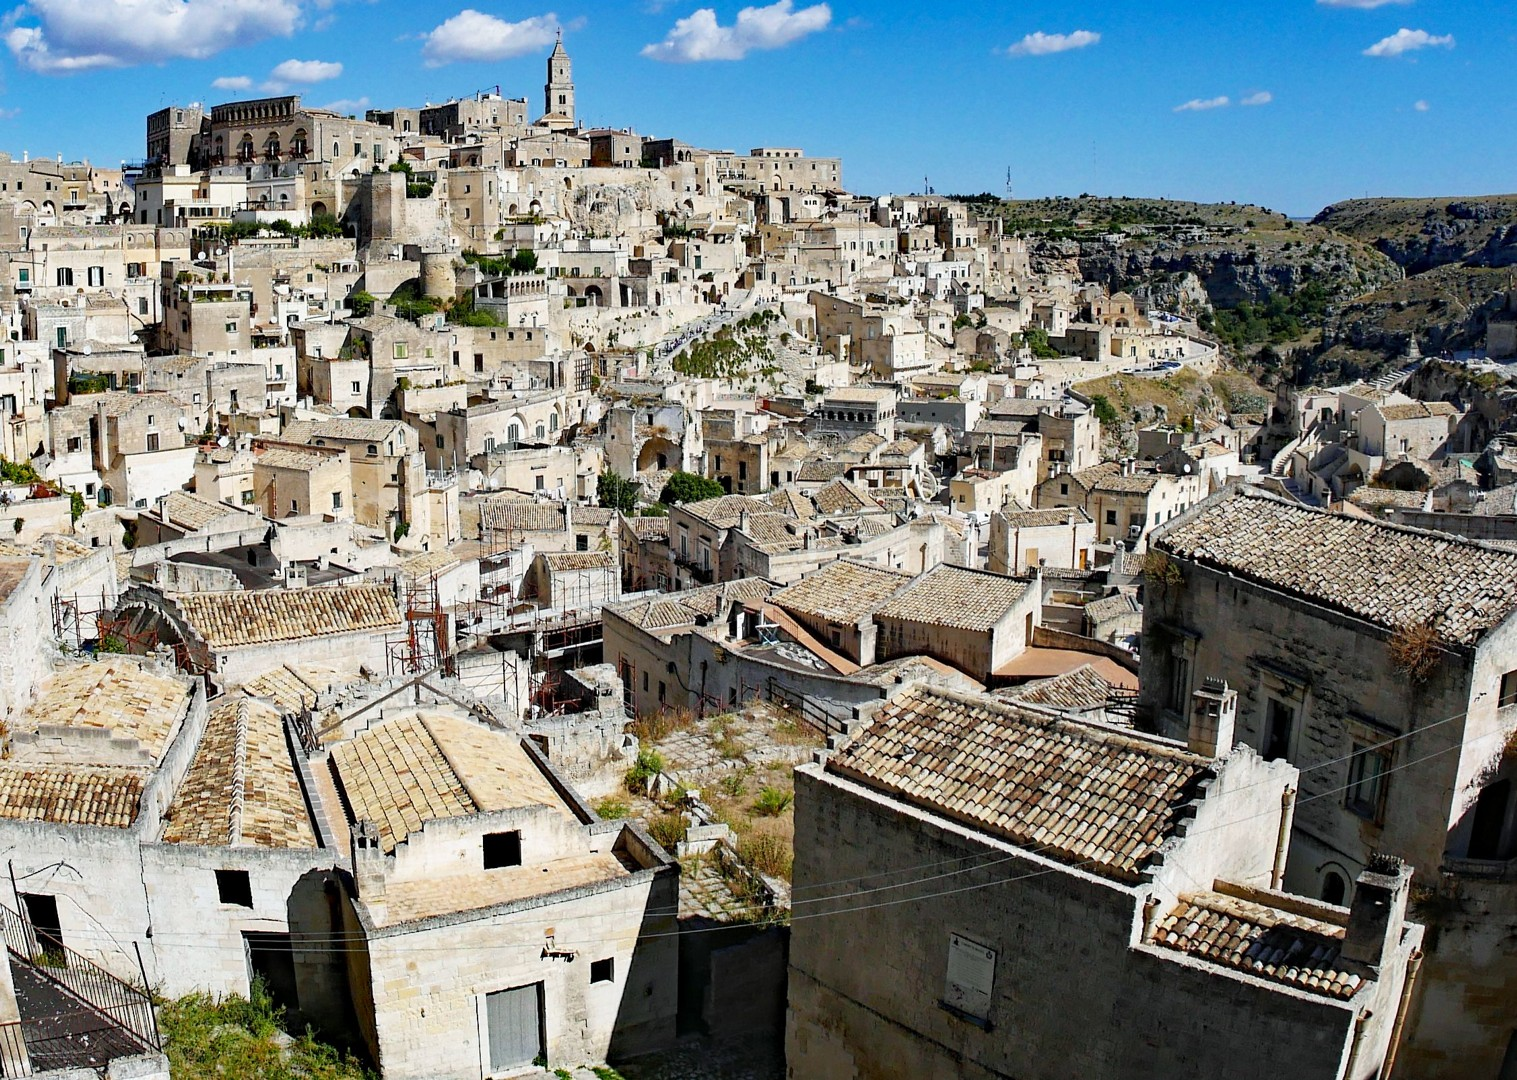 road-cycling-holiday-matera-panorama.jpg - Italy - Grand Traverse - South to North (22 days) - Guided Road Cycling Holiday - Italia Road Cycling